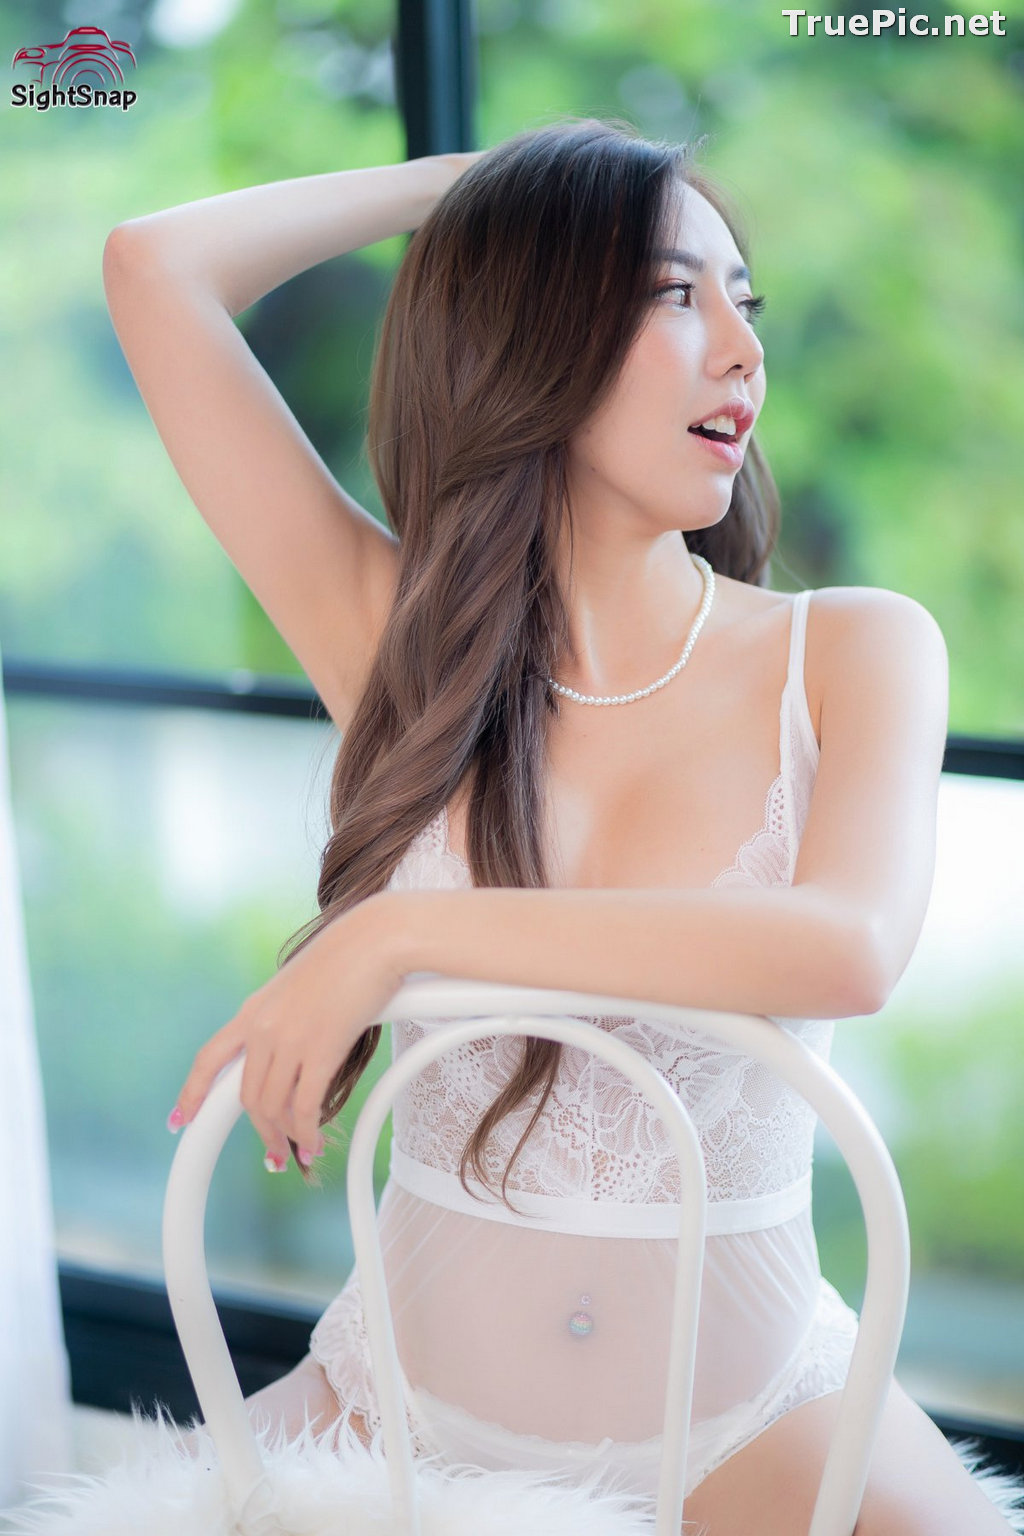 Image Thailand Sexy Model – Champ Phawida - Transparent White Lingerie - TruePic.net - Picture-8